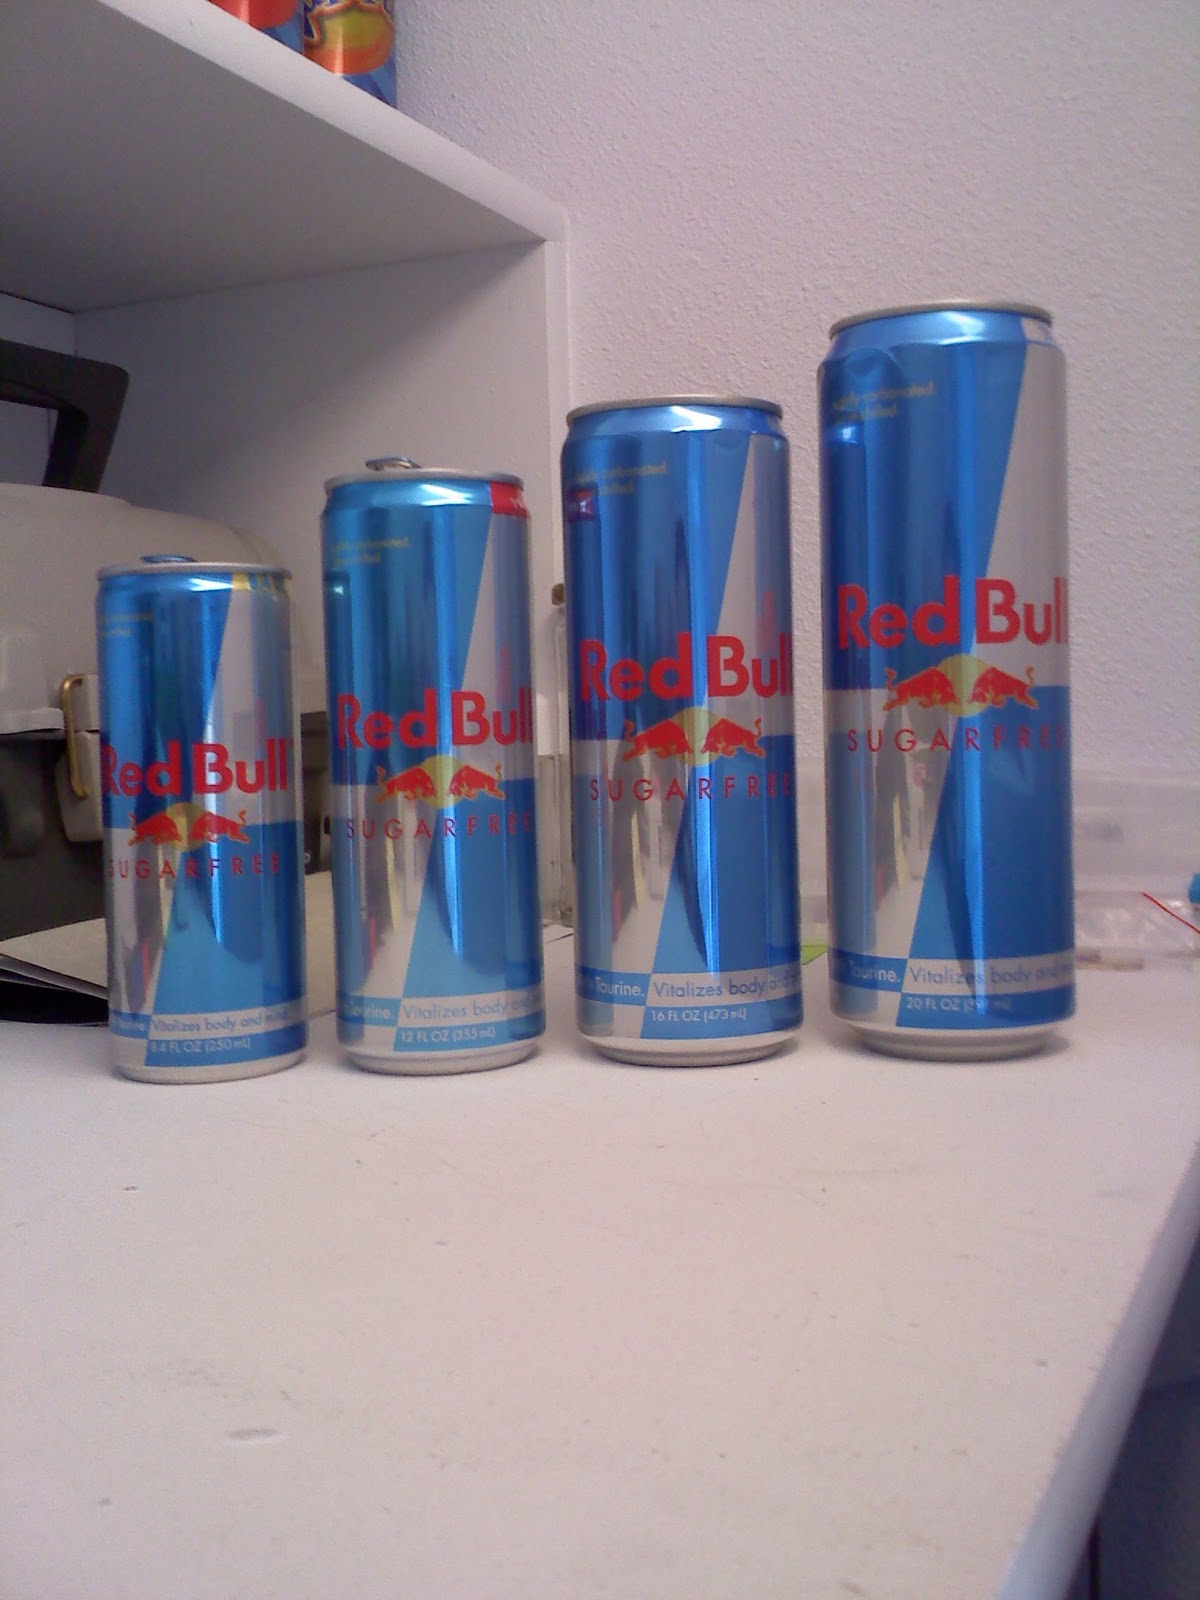 Caffeine Review For Red Bull Sugar Free